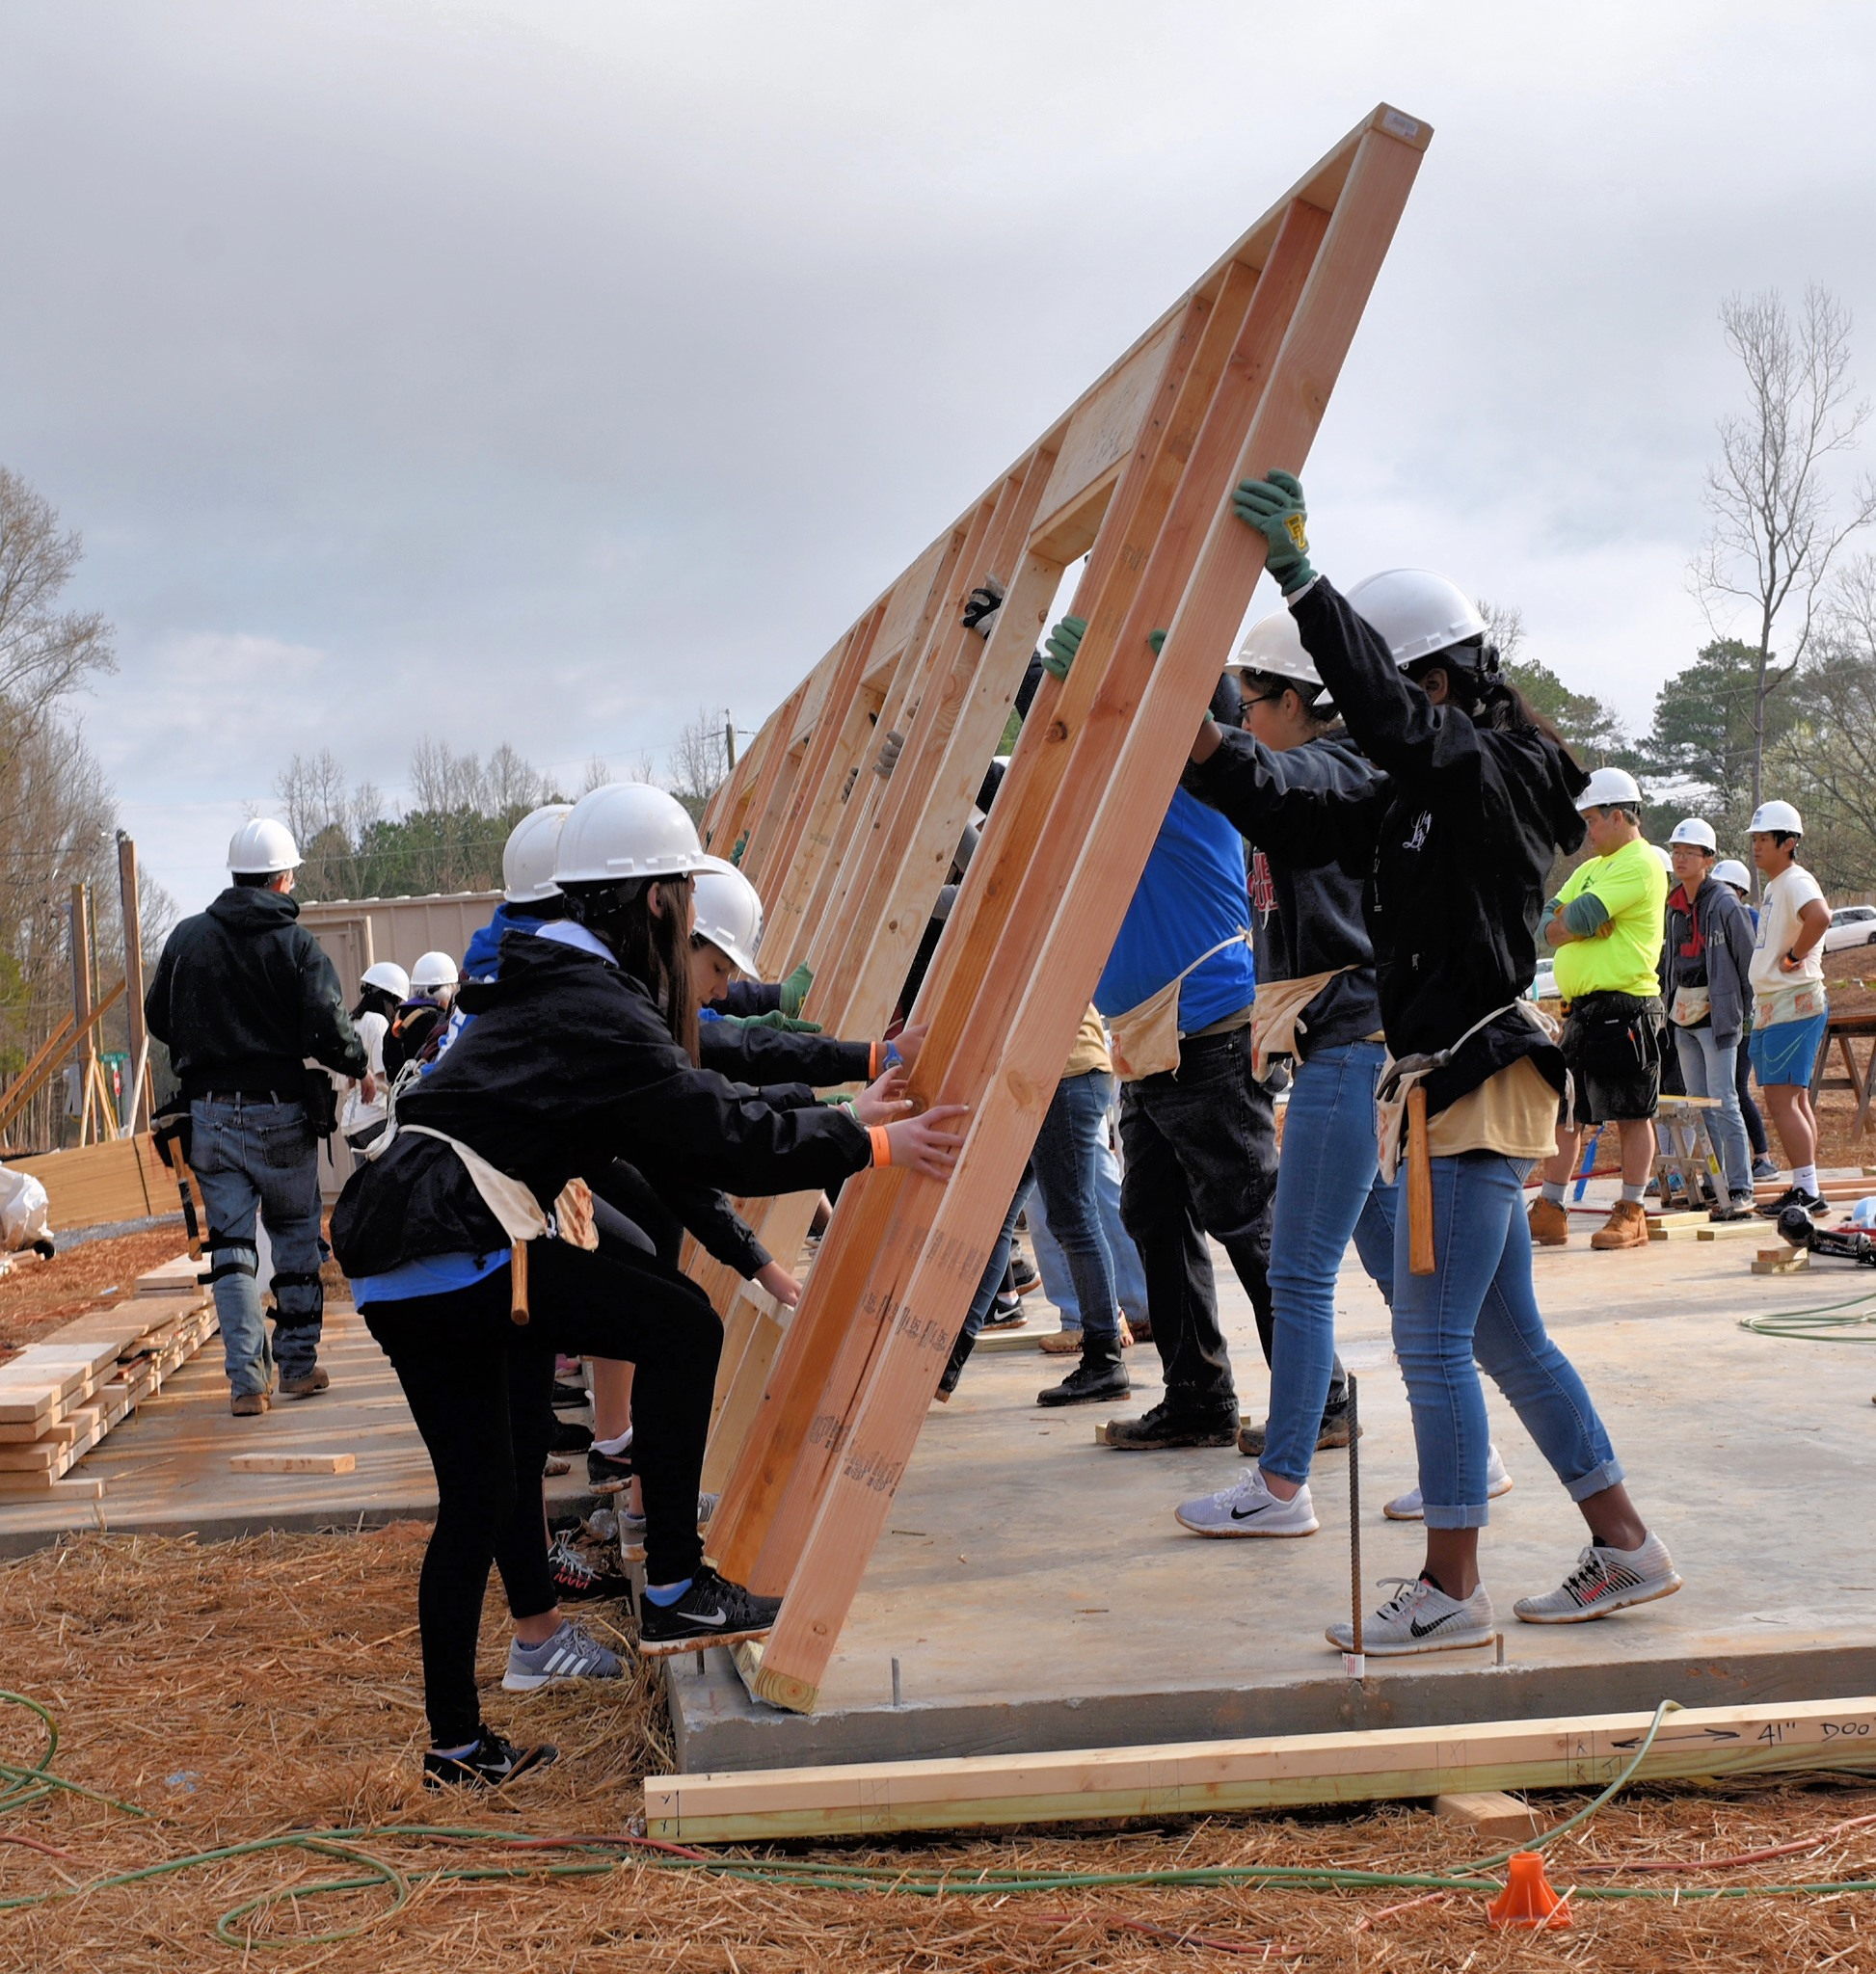 People raising a wooden beam up